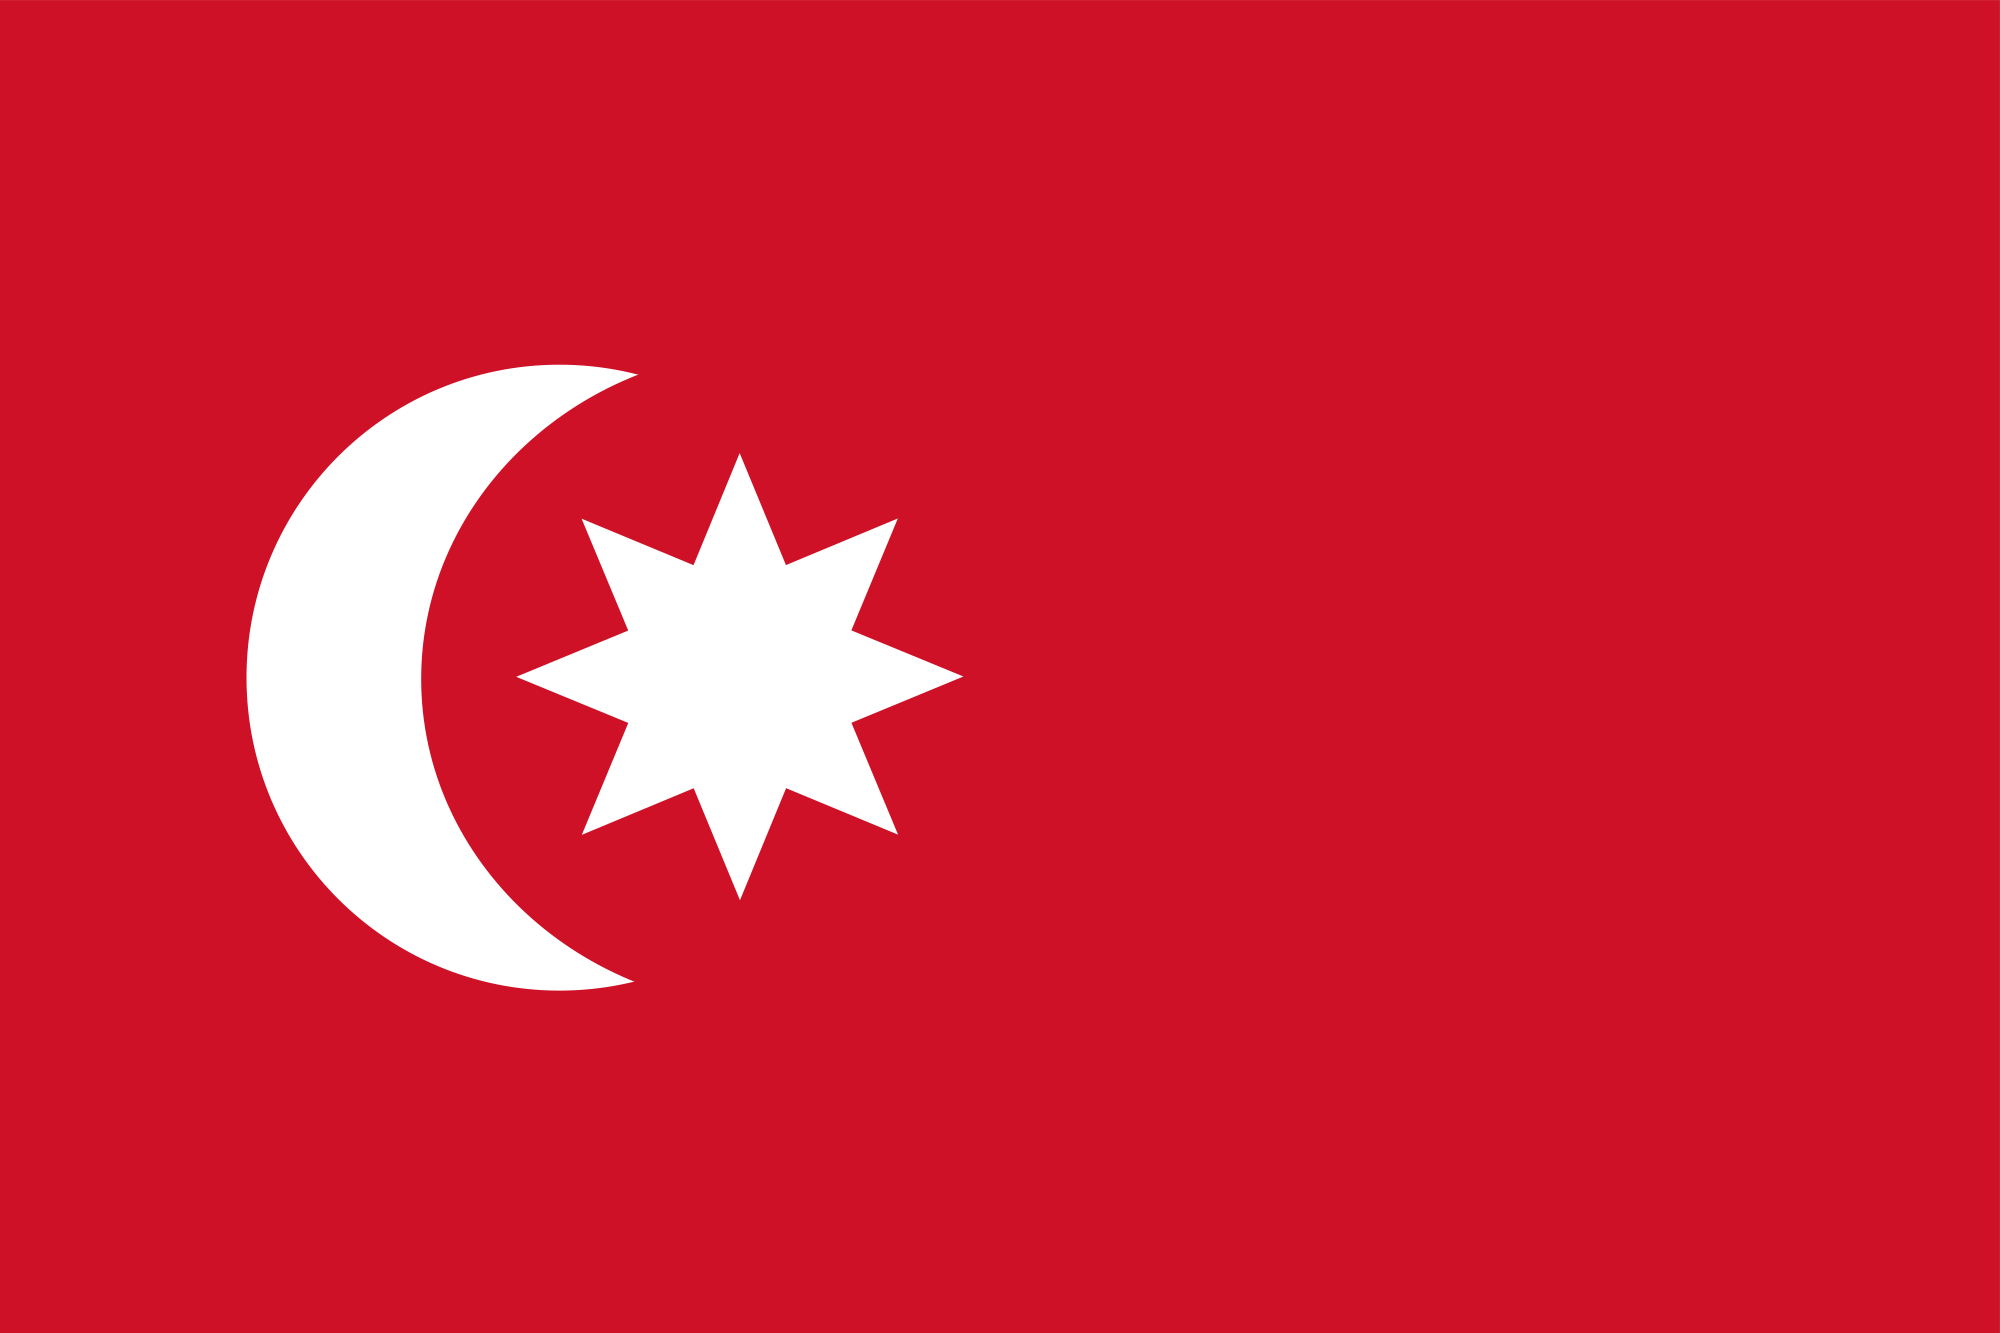 political map of spain with Flag Of The Aceh Sultanate 188891394 on Spanish American War 32921483 together with Turkmenistan Capital Map also Tuvalu together with Europe p likewise Flag Of The Aceh Sultanate 188891394.